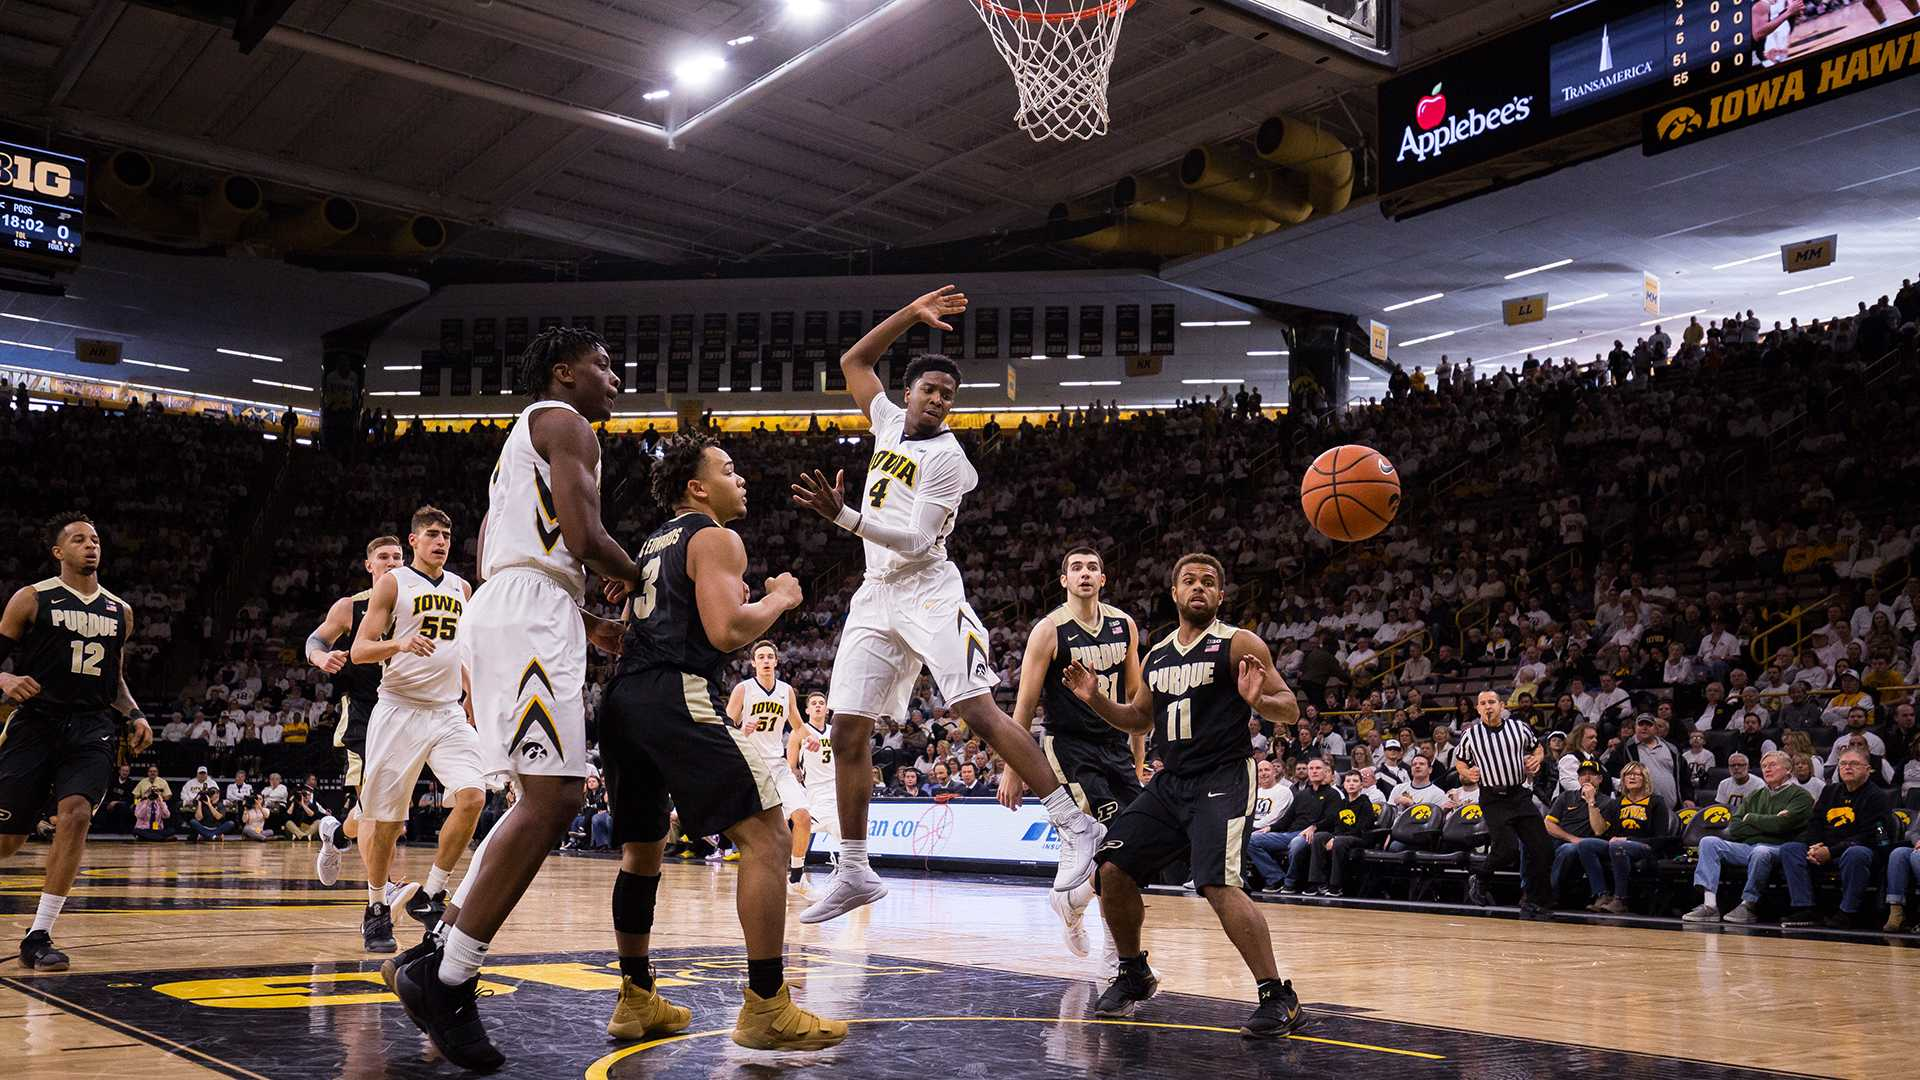 Iowa guard Isaiah Moss watches the ball go out of bounds during a game against Purdue University on Saturday, Jan. 20, 2018. The Boilermakers defeated the Hawkeyes 87-64. (David Harmantas/The Daily Iowan)